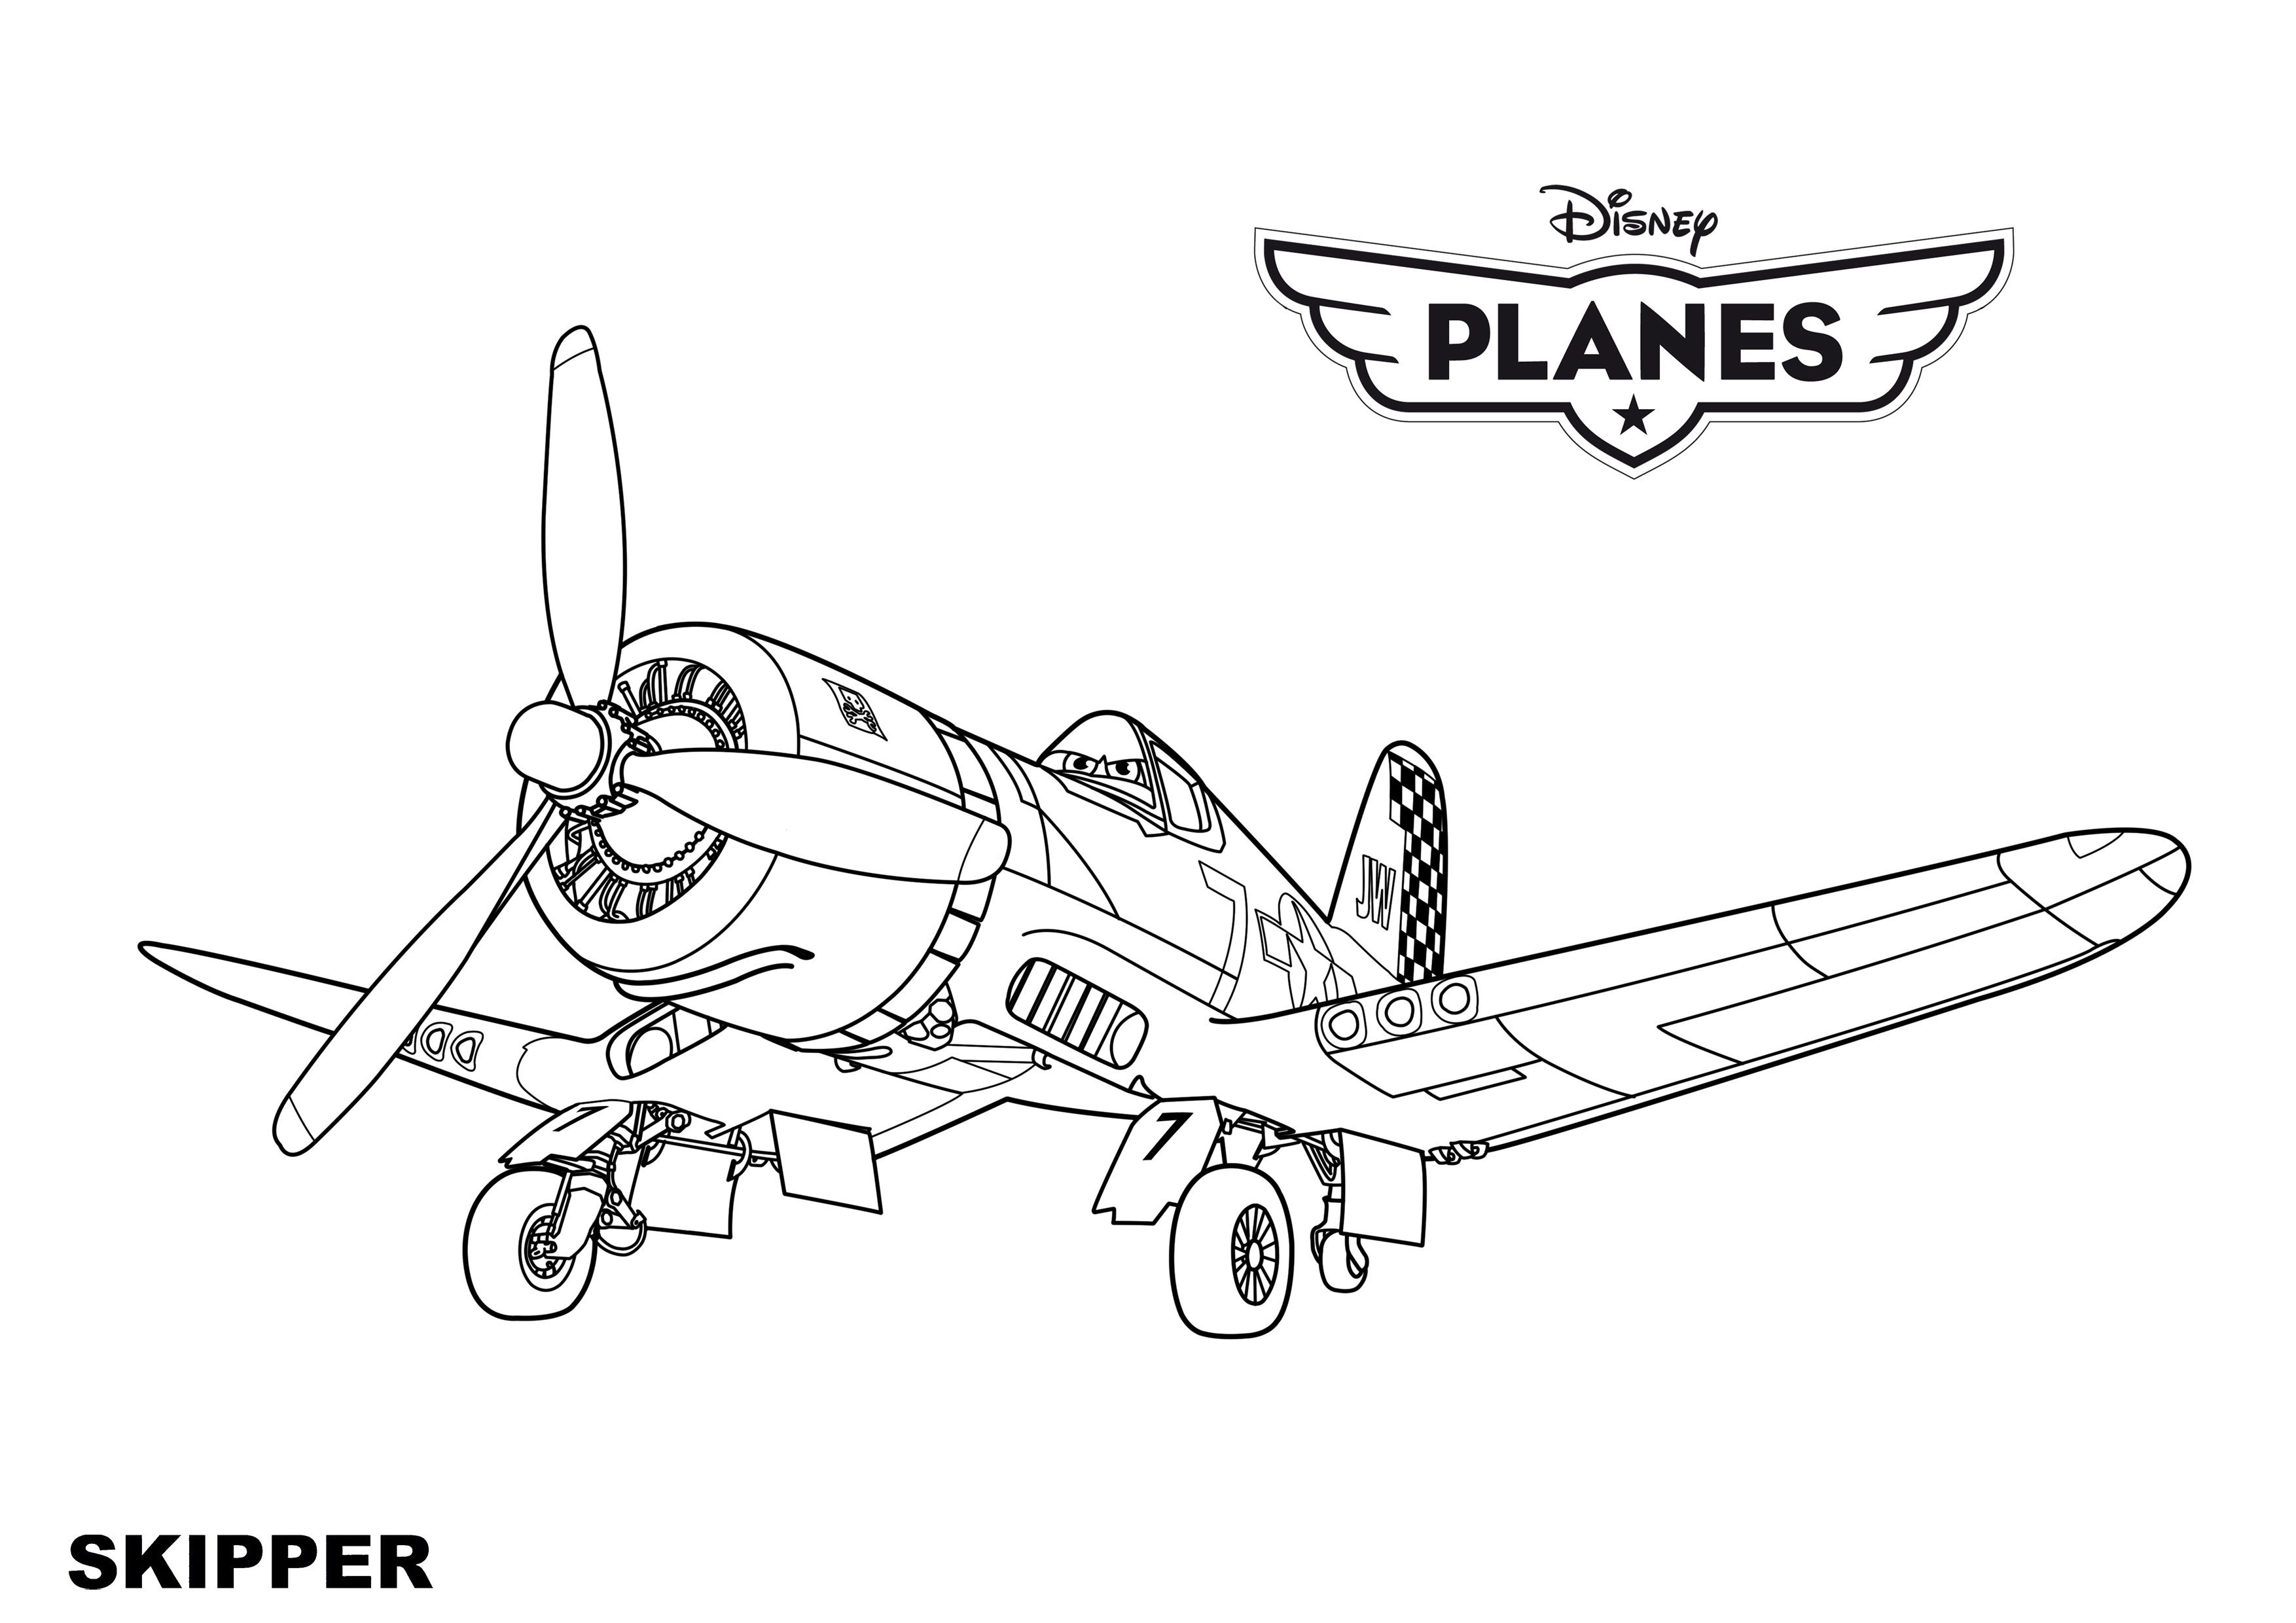 Disney Planes Coloring Pages  Airplane coloring pages, Disney